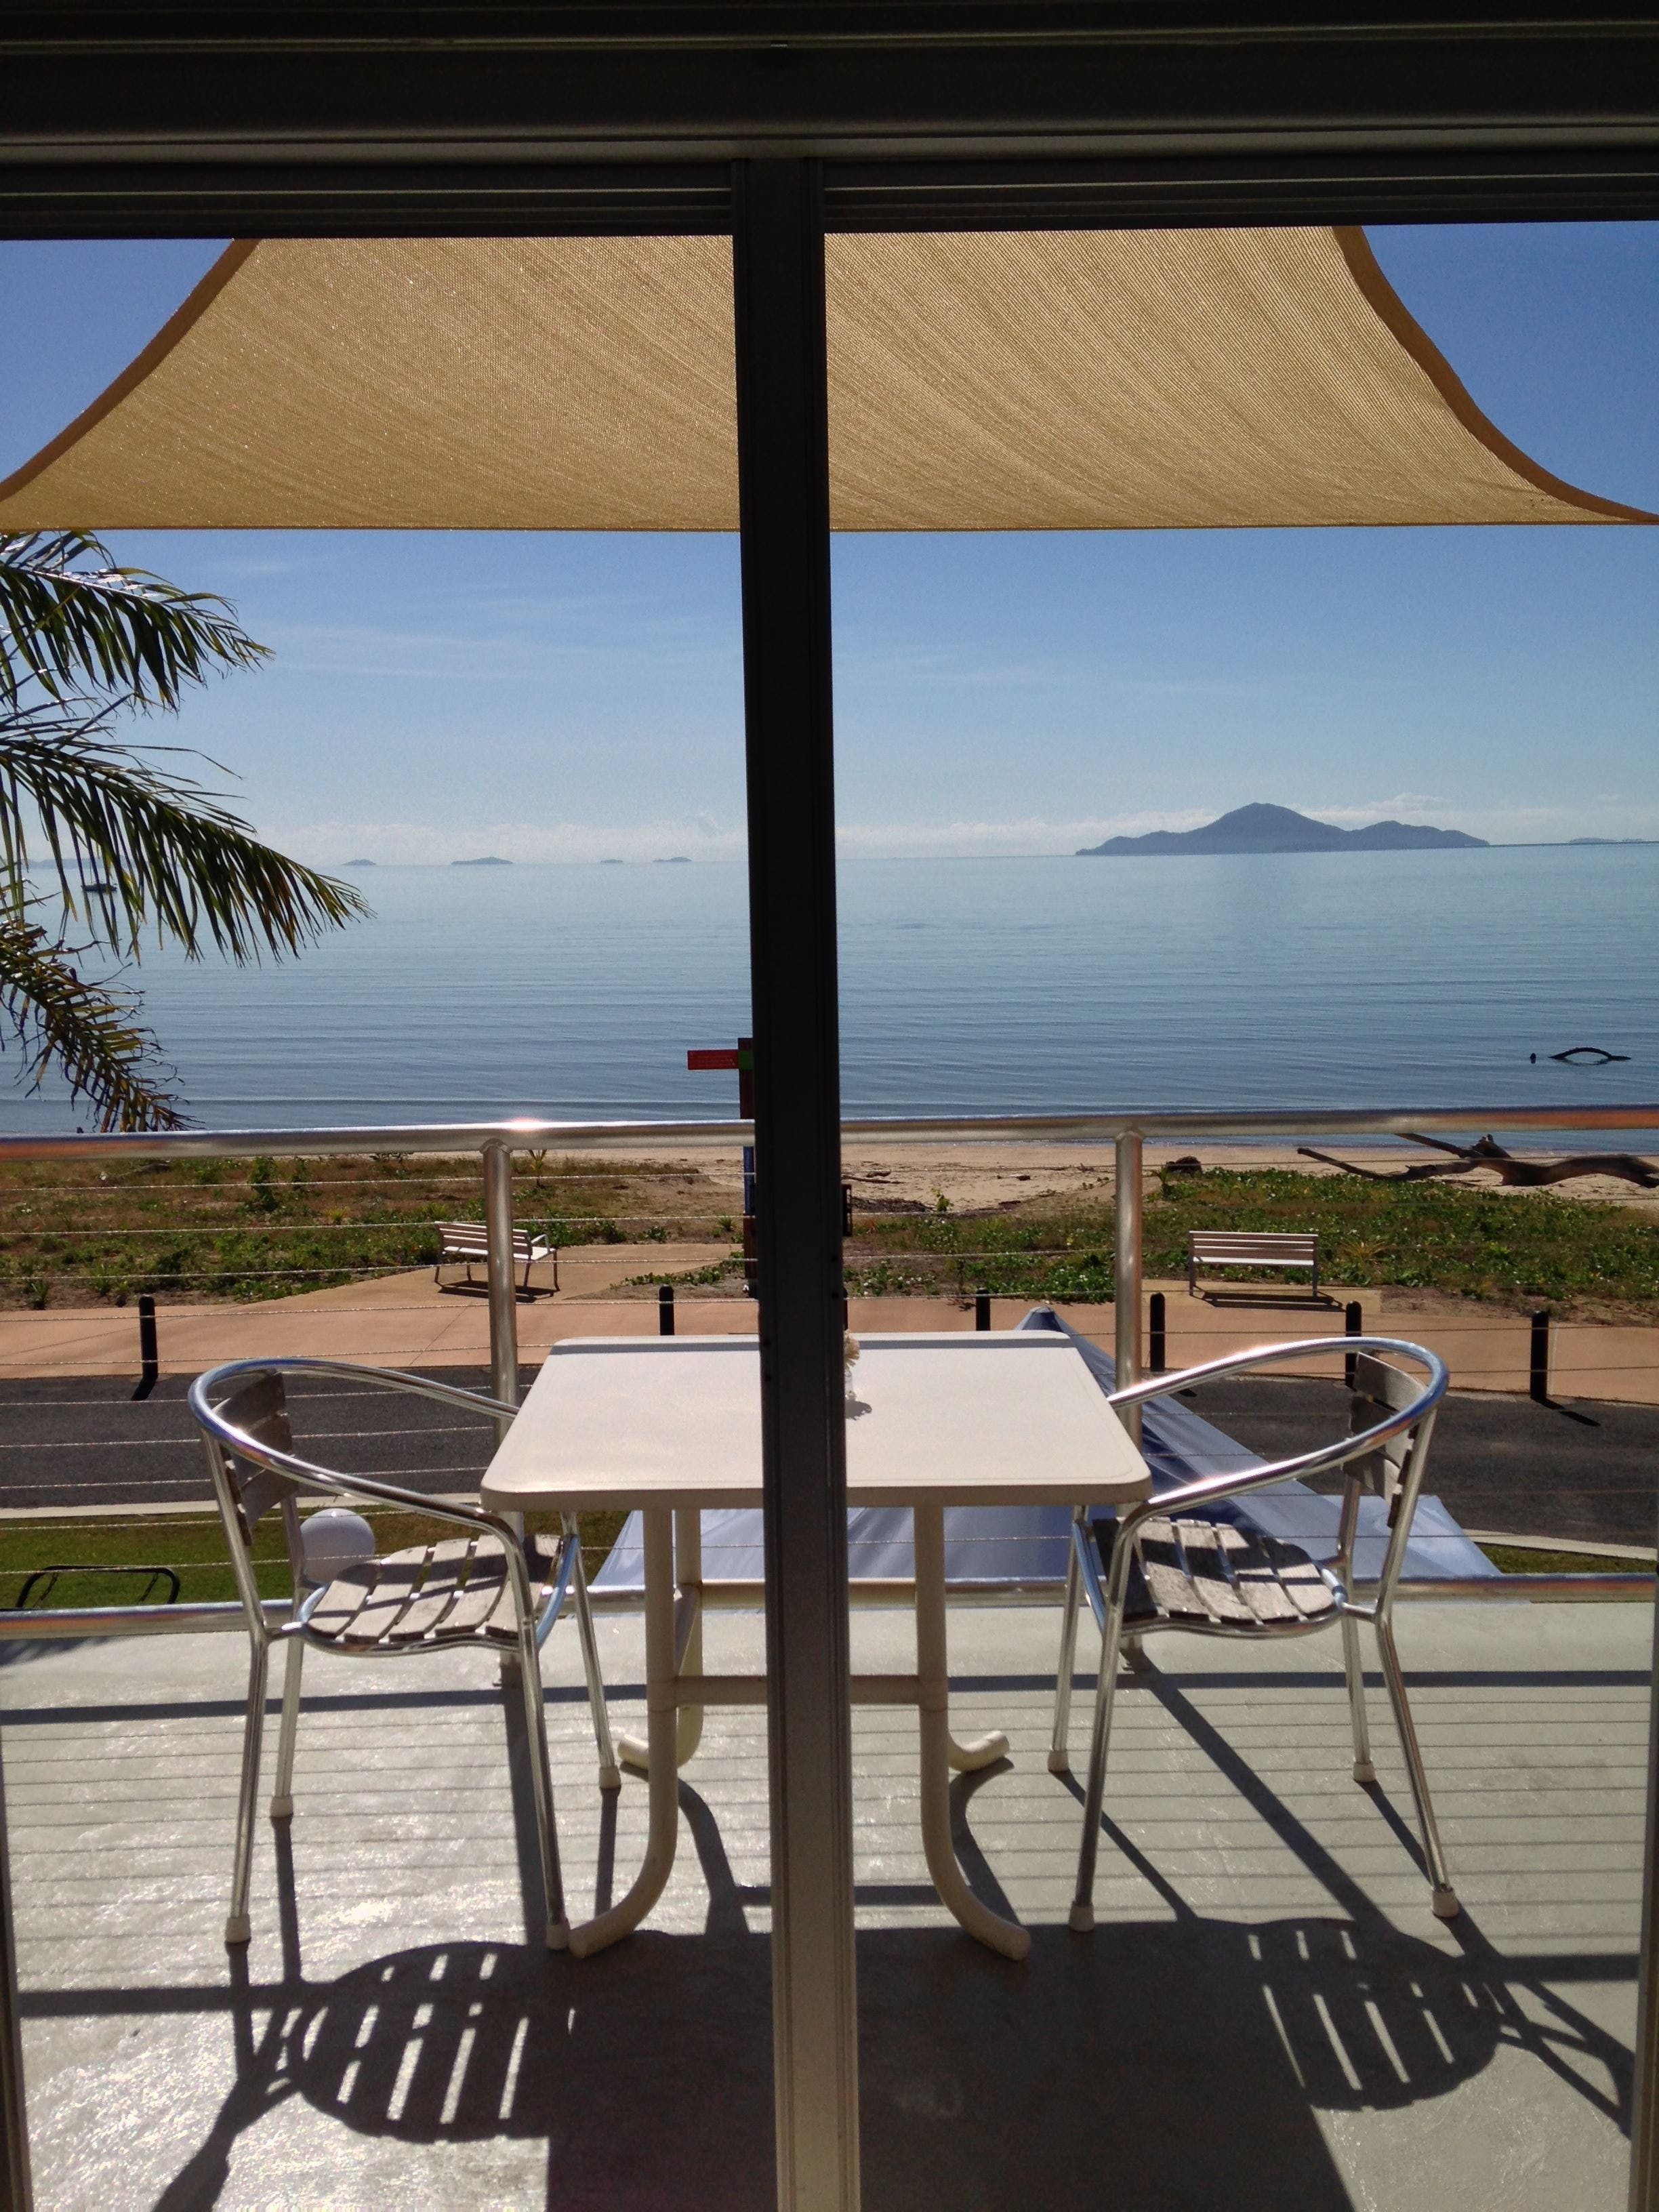 Cardwell Beachfront Motel - Townsville Tourism